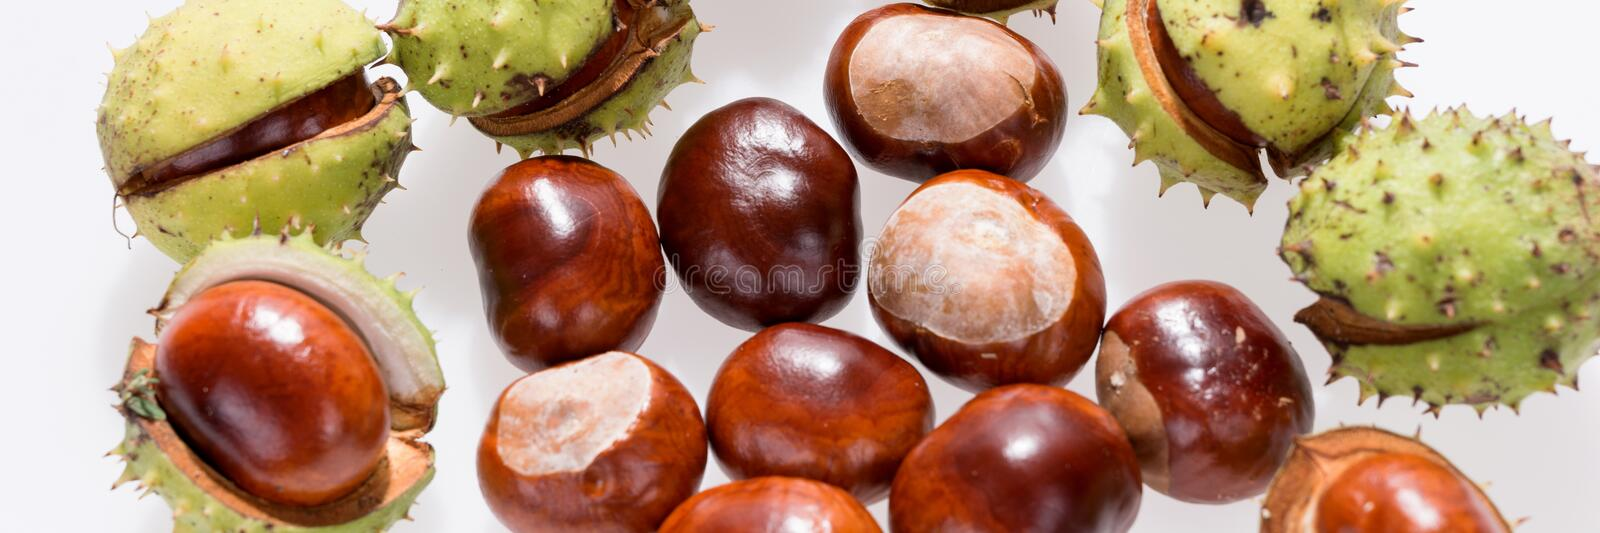 Chestnuts isolated on white, fruits chestnut, Panoramic image. Chestnuts isolated on white, fruits chestnut, Aesculus hippocastanum. Panoramic image stock image